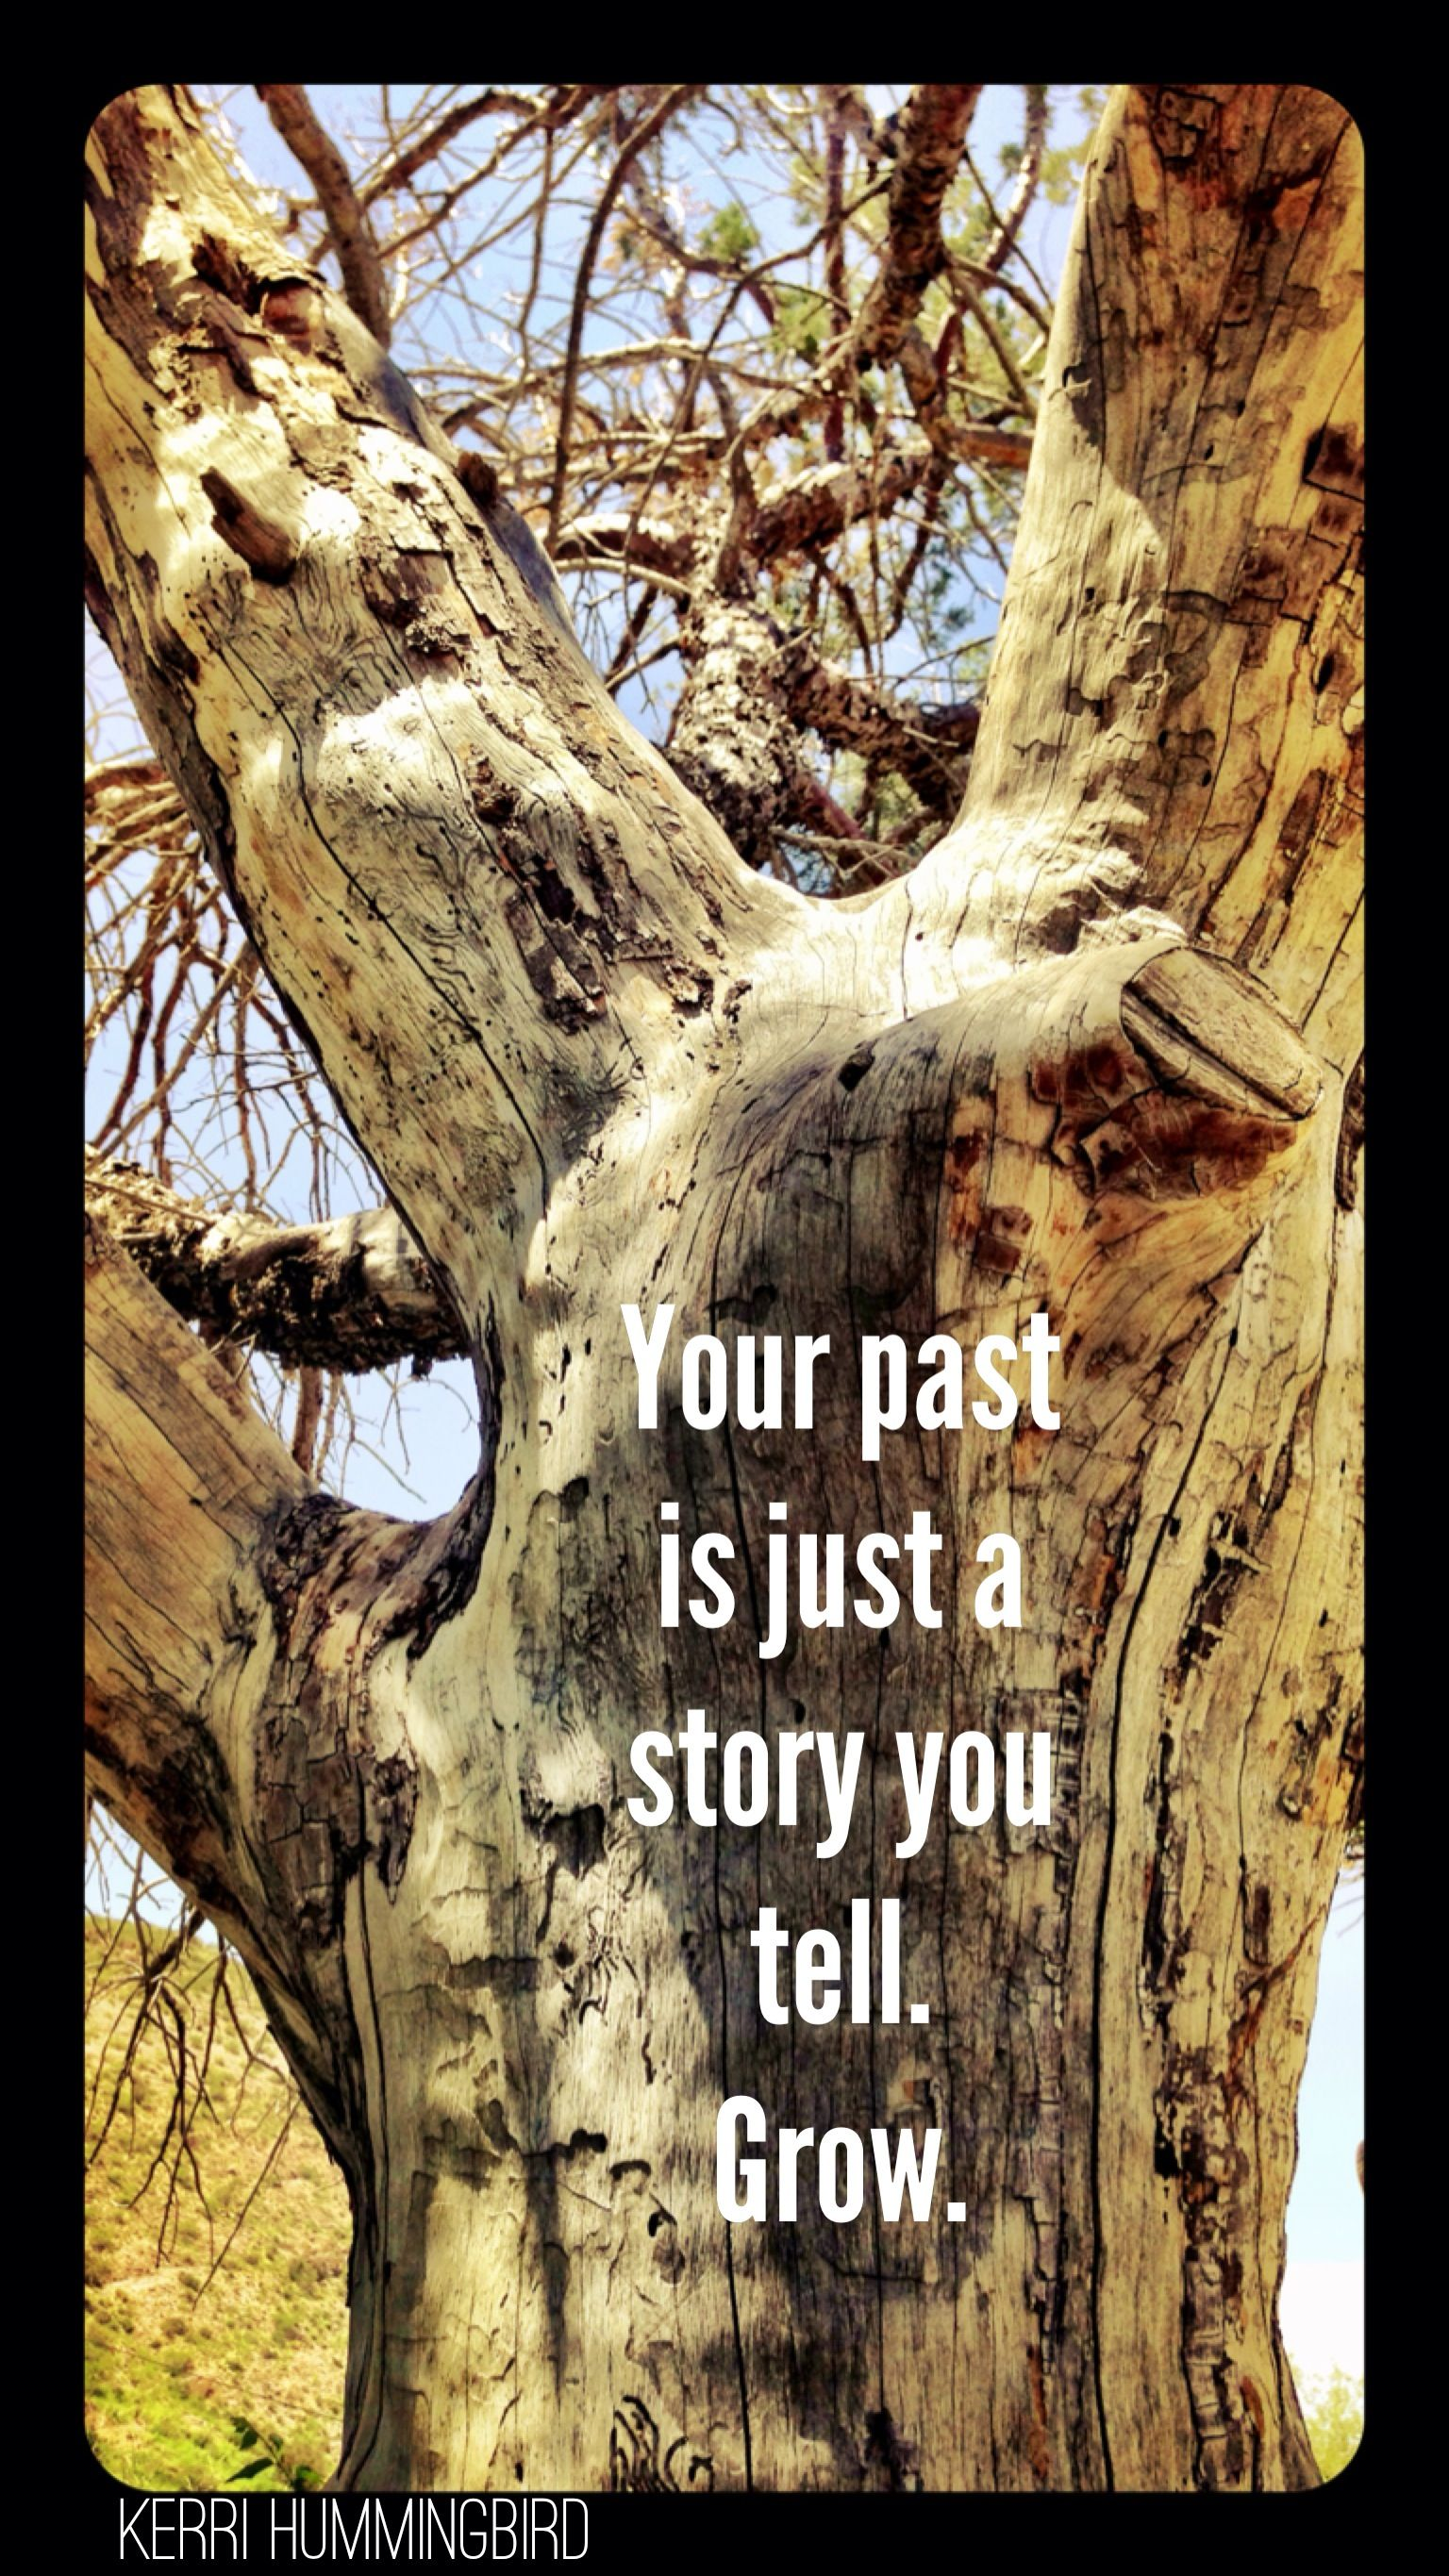 Your past is just a story you tell. Grow.